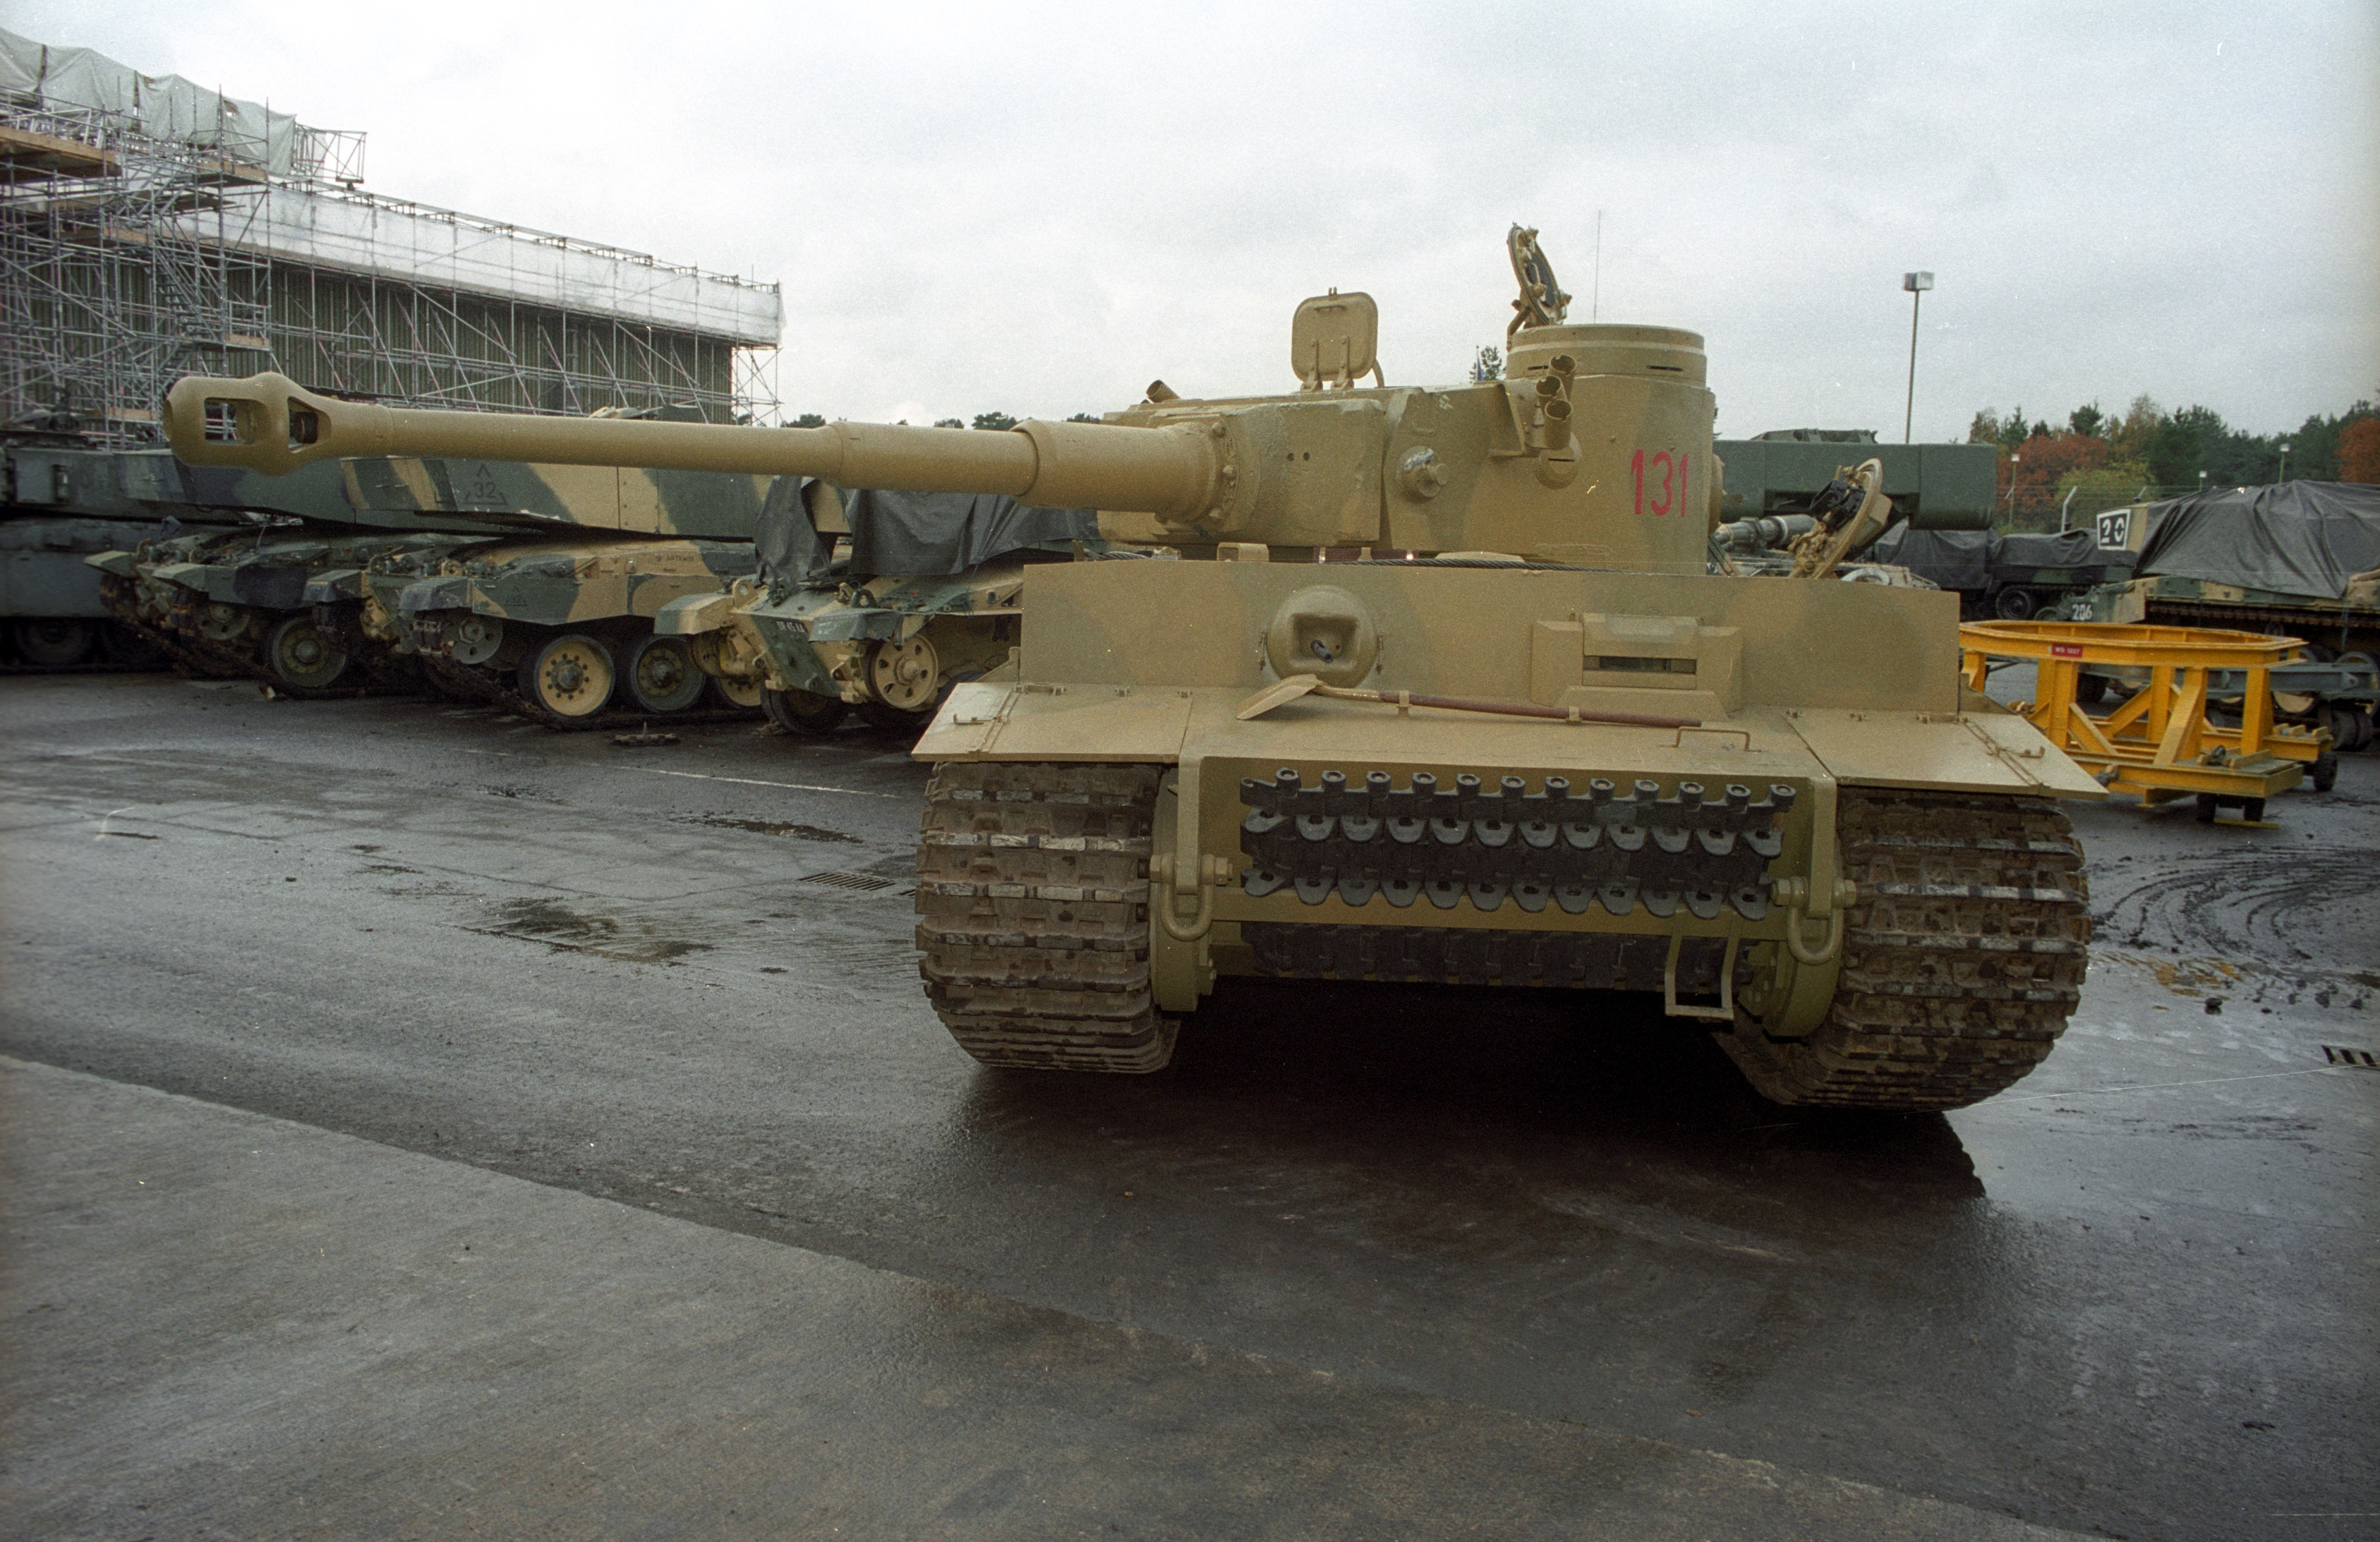 Tiger 131 with Challenger 2s behind it